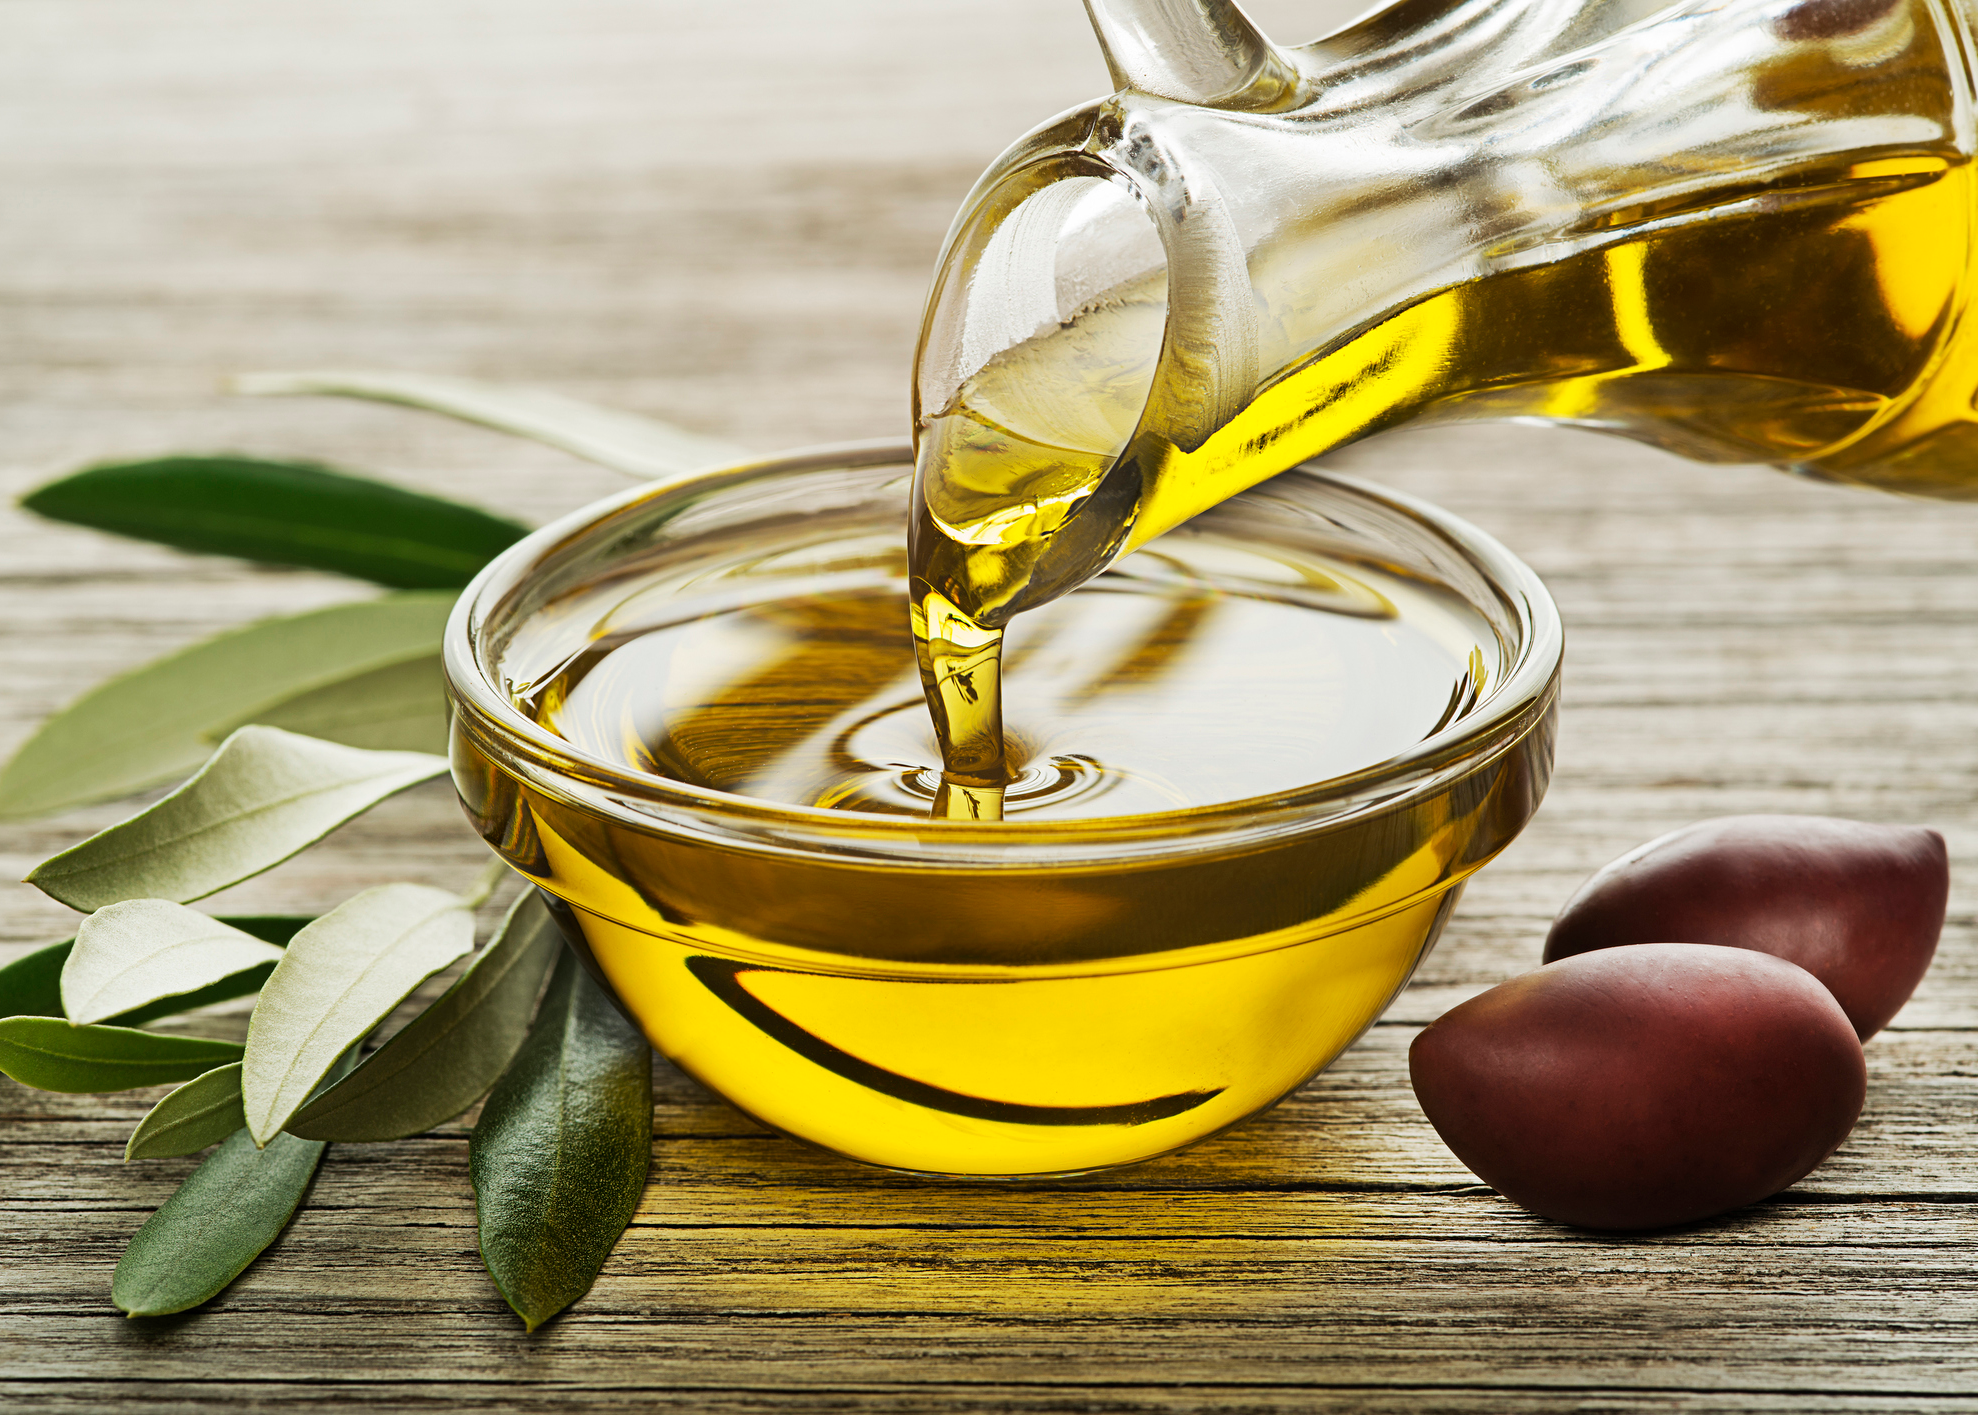 Bottle of Olive oil pouring close up